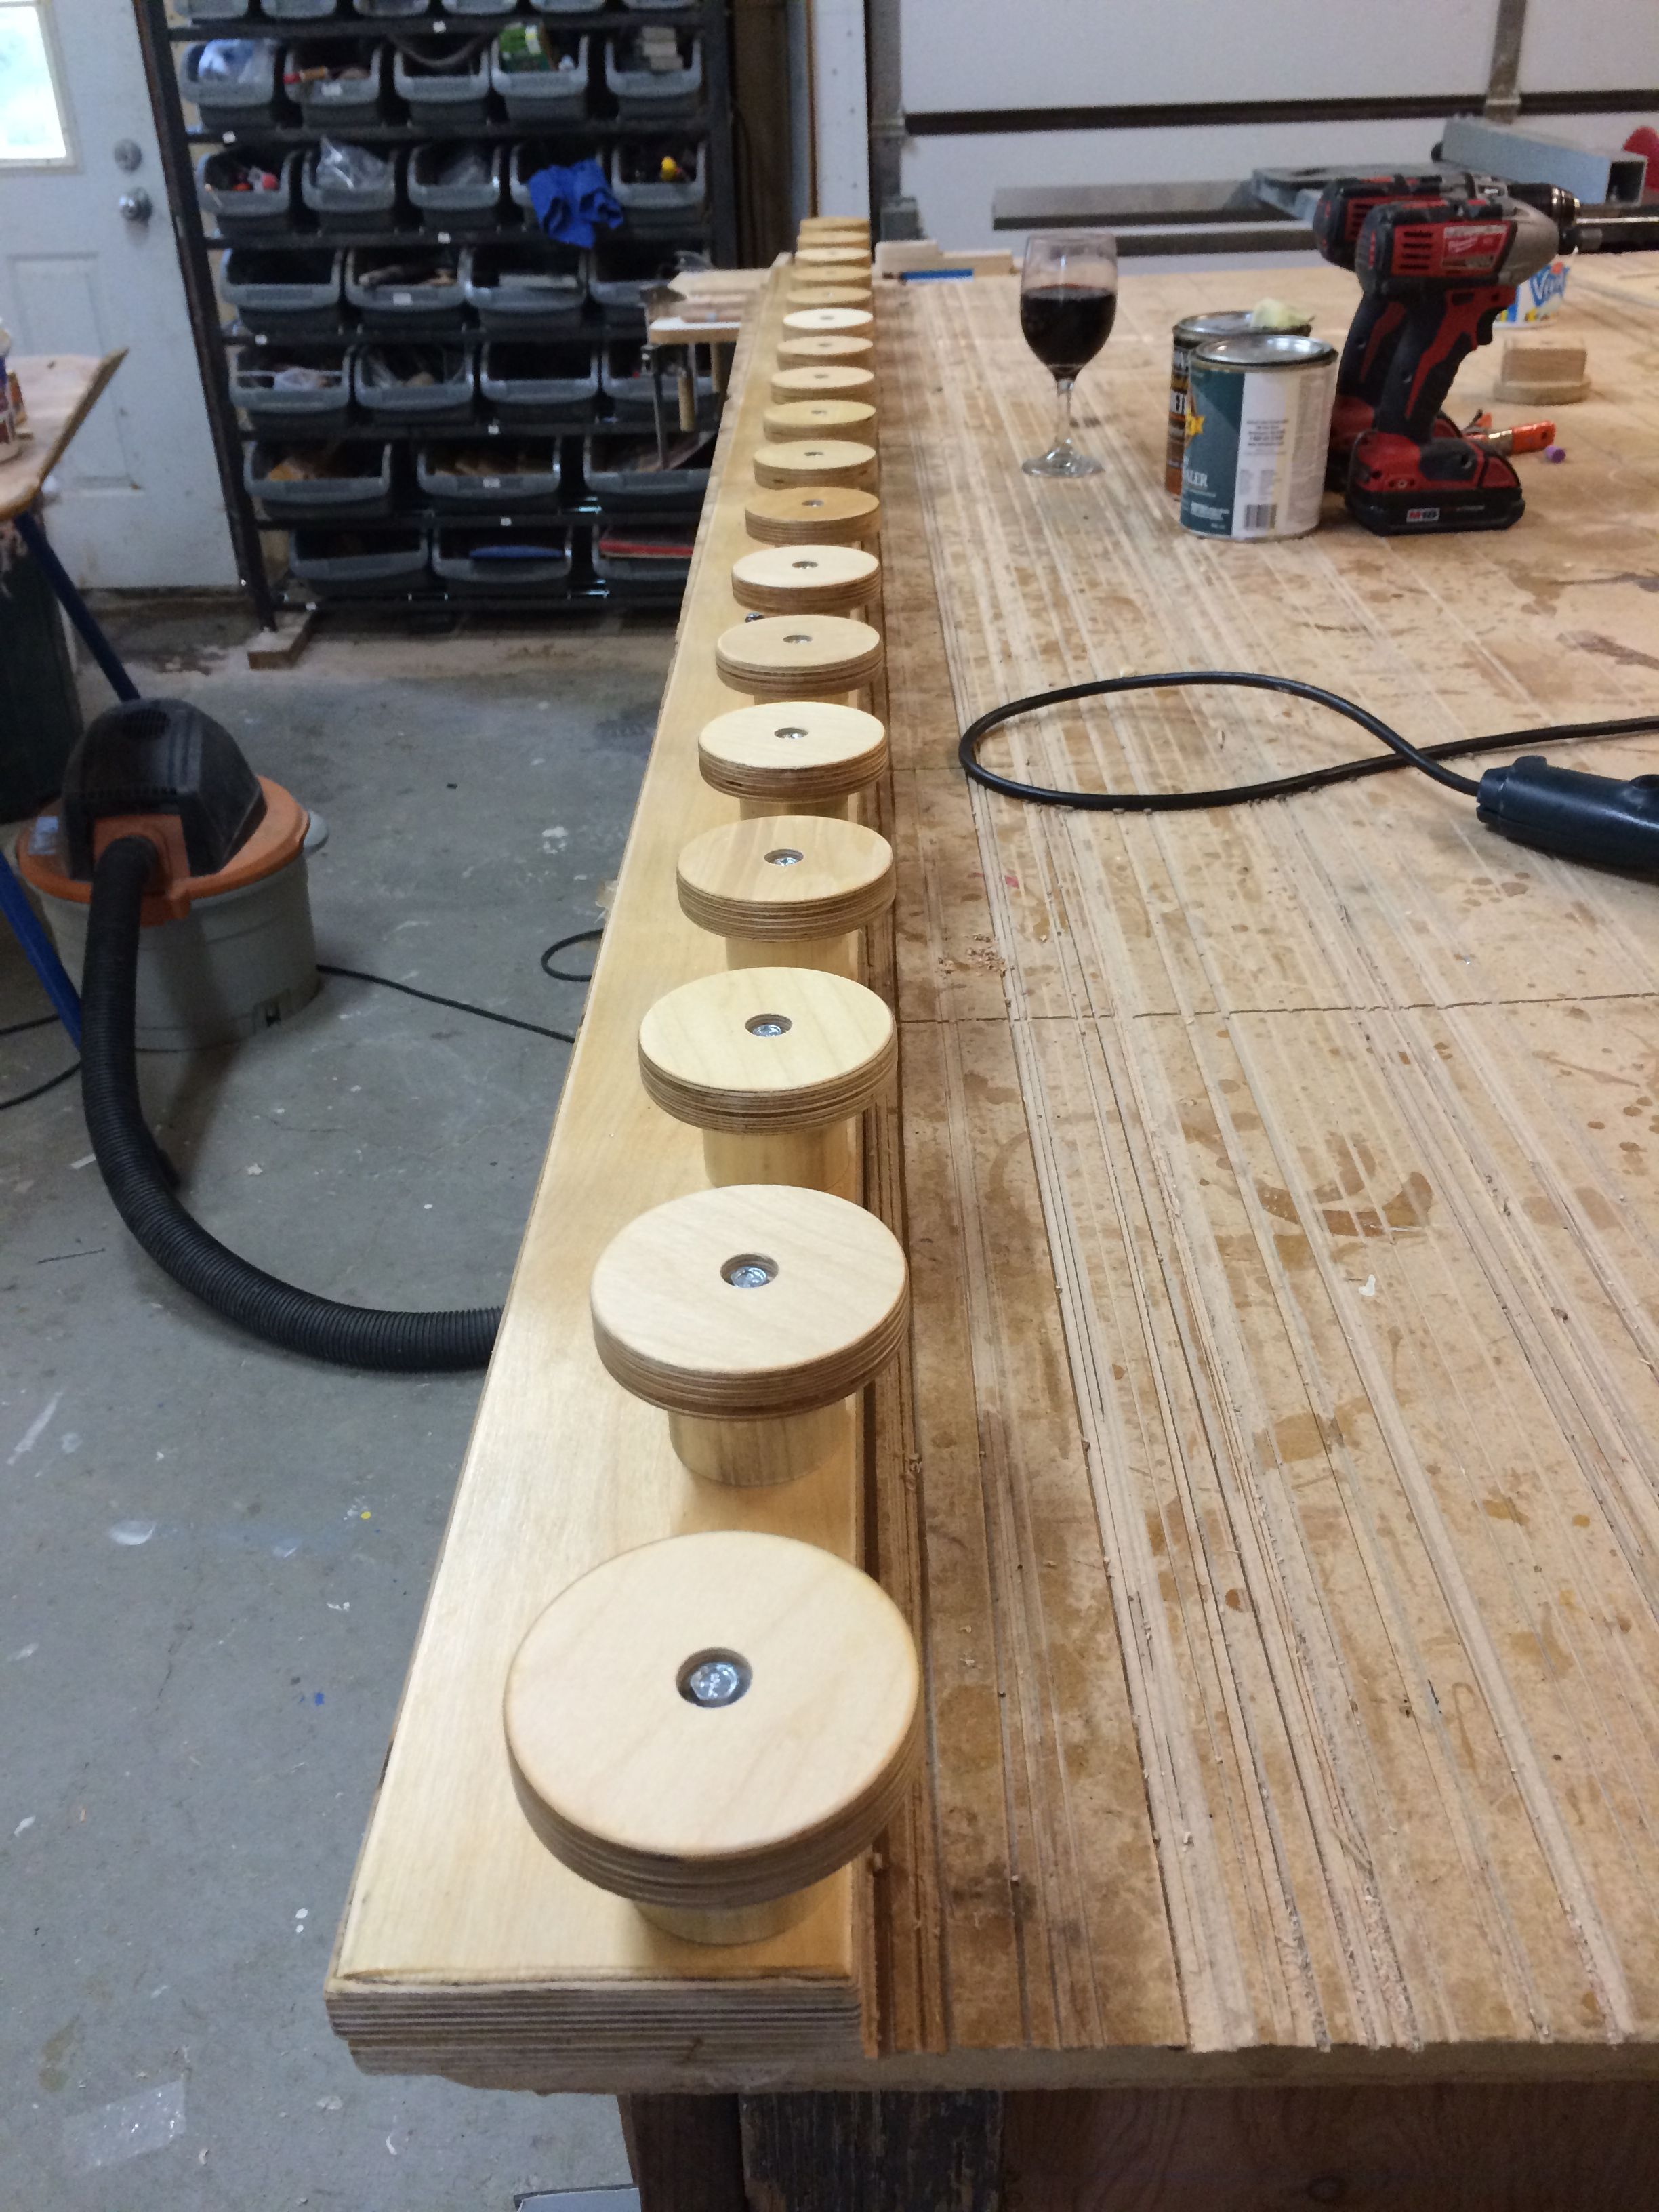 96 inch Totti Button Ski Rack holds 18 pairs of skis.  See more on www.buttonskirack.com.